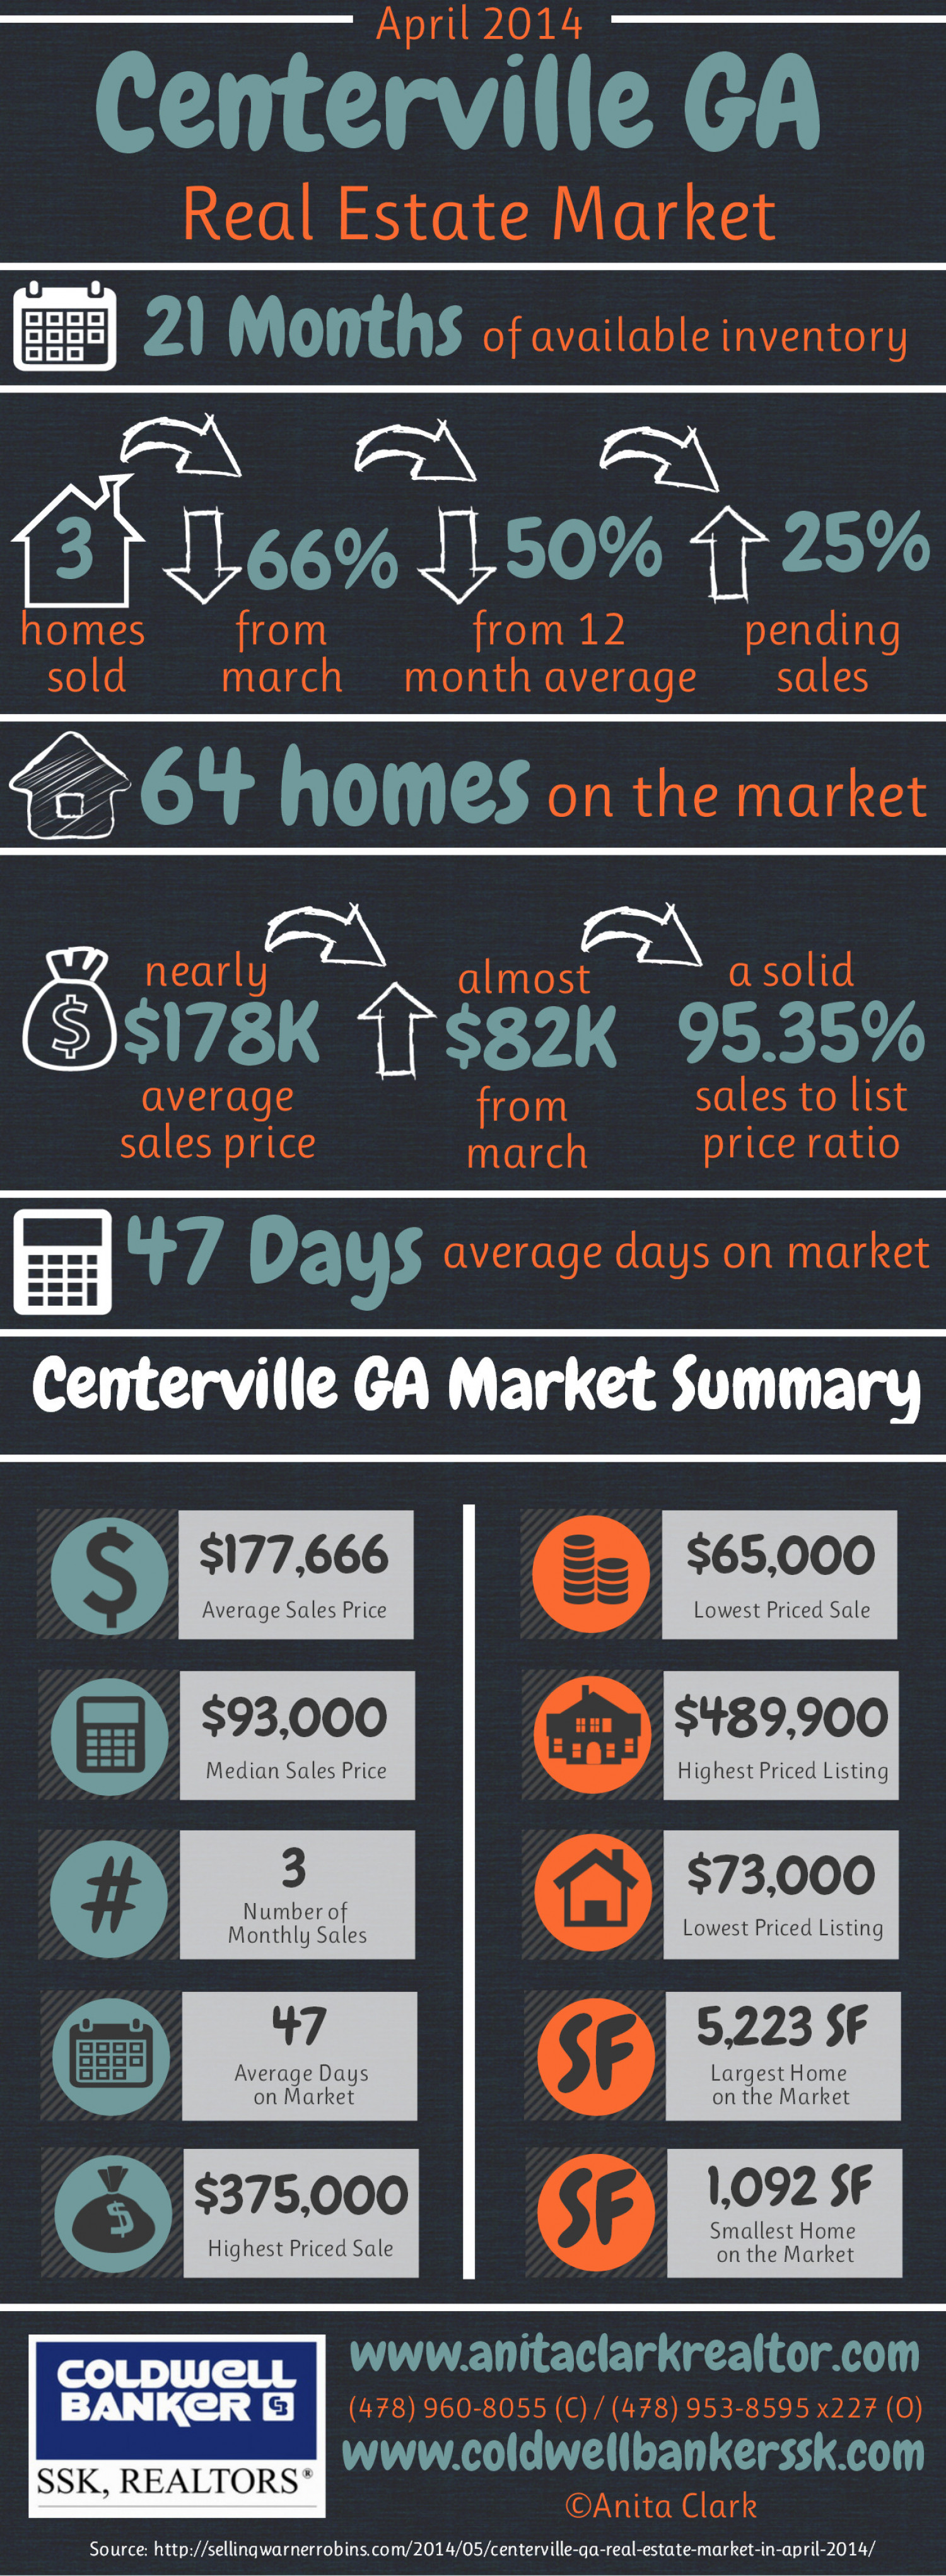 Centerville GA Real Estate Market in April 2014 Infographic